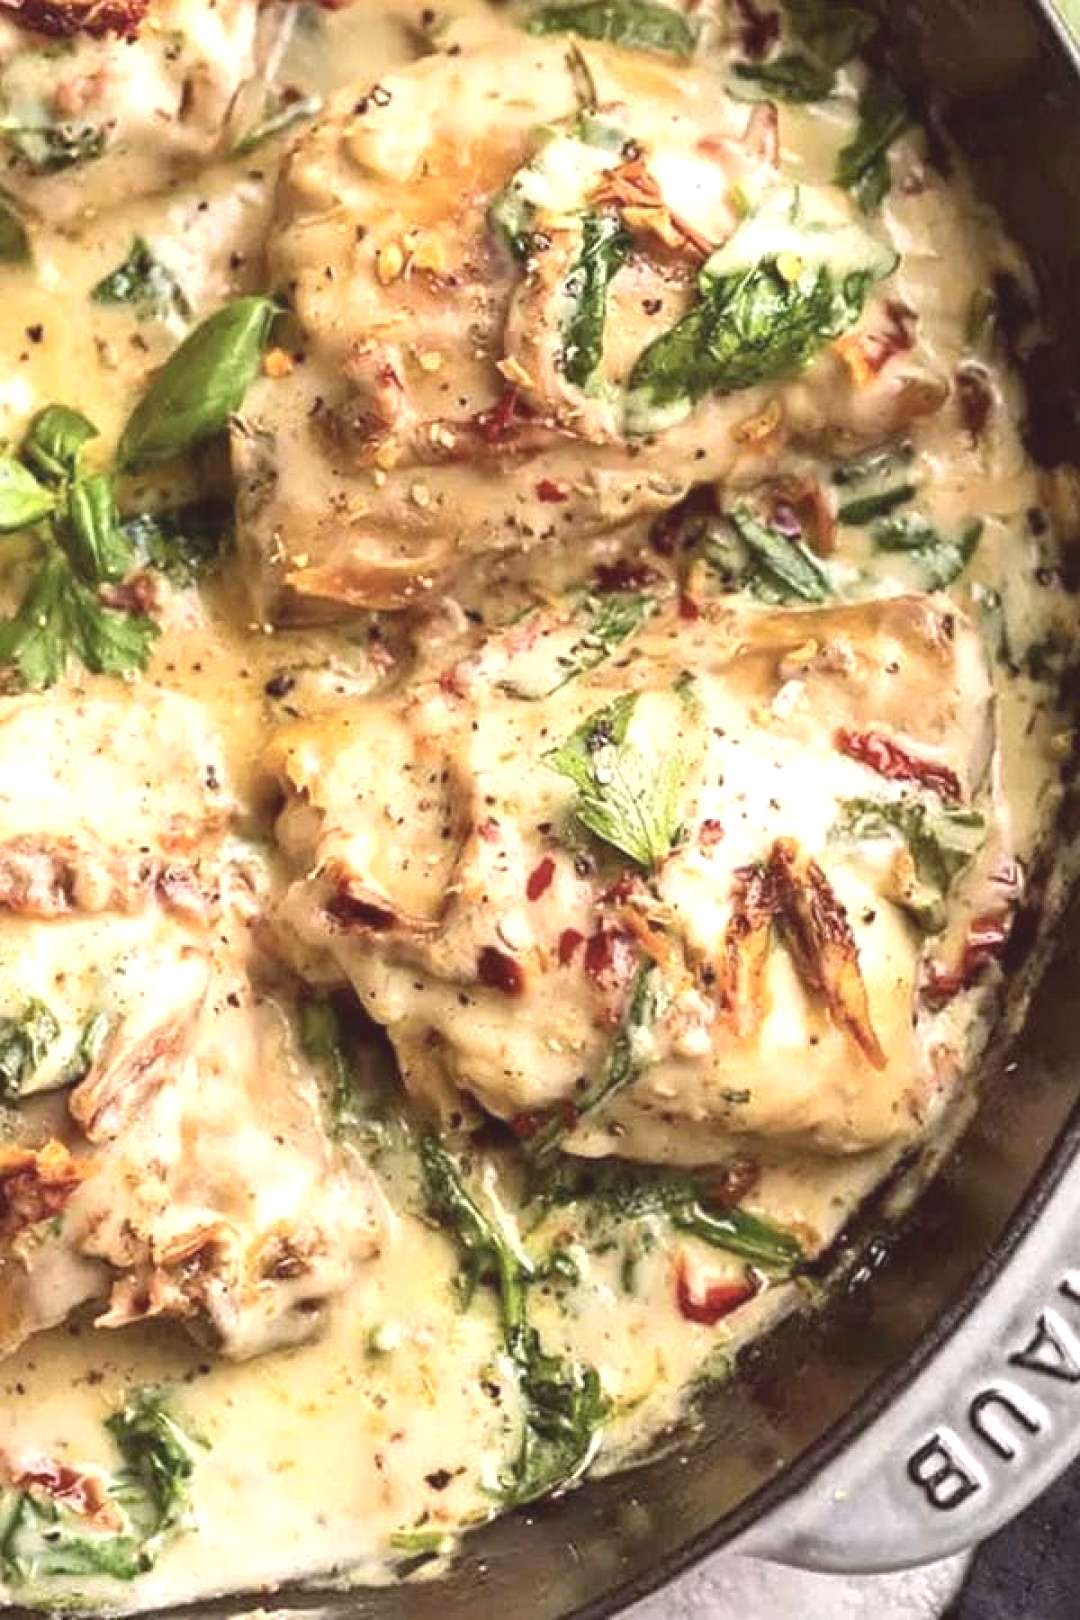 24 Easy Chicken Thigh Recipes That Are on the Keto Diet course